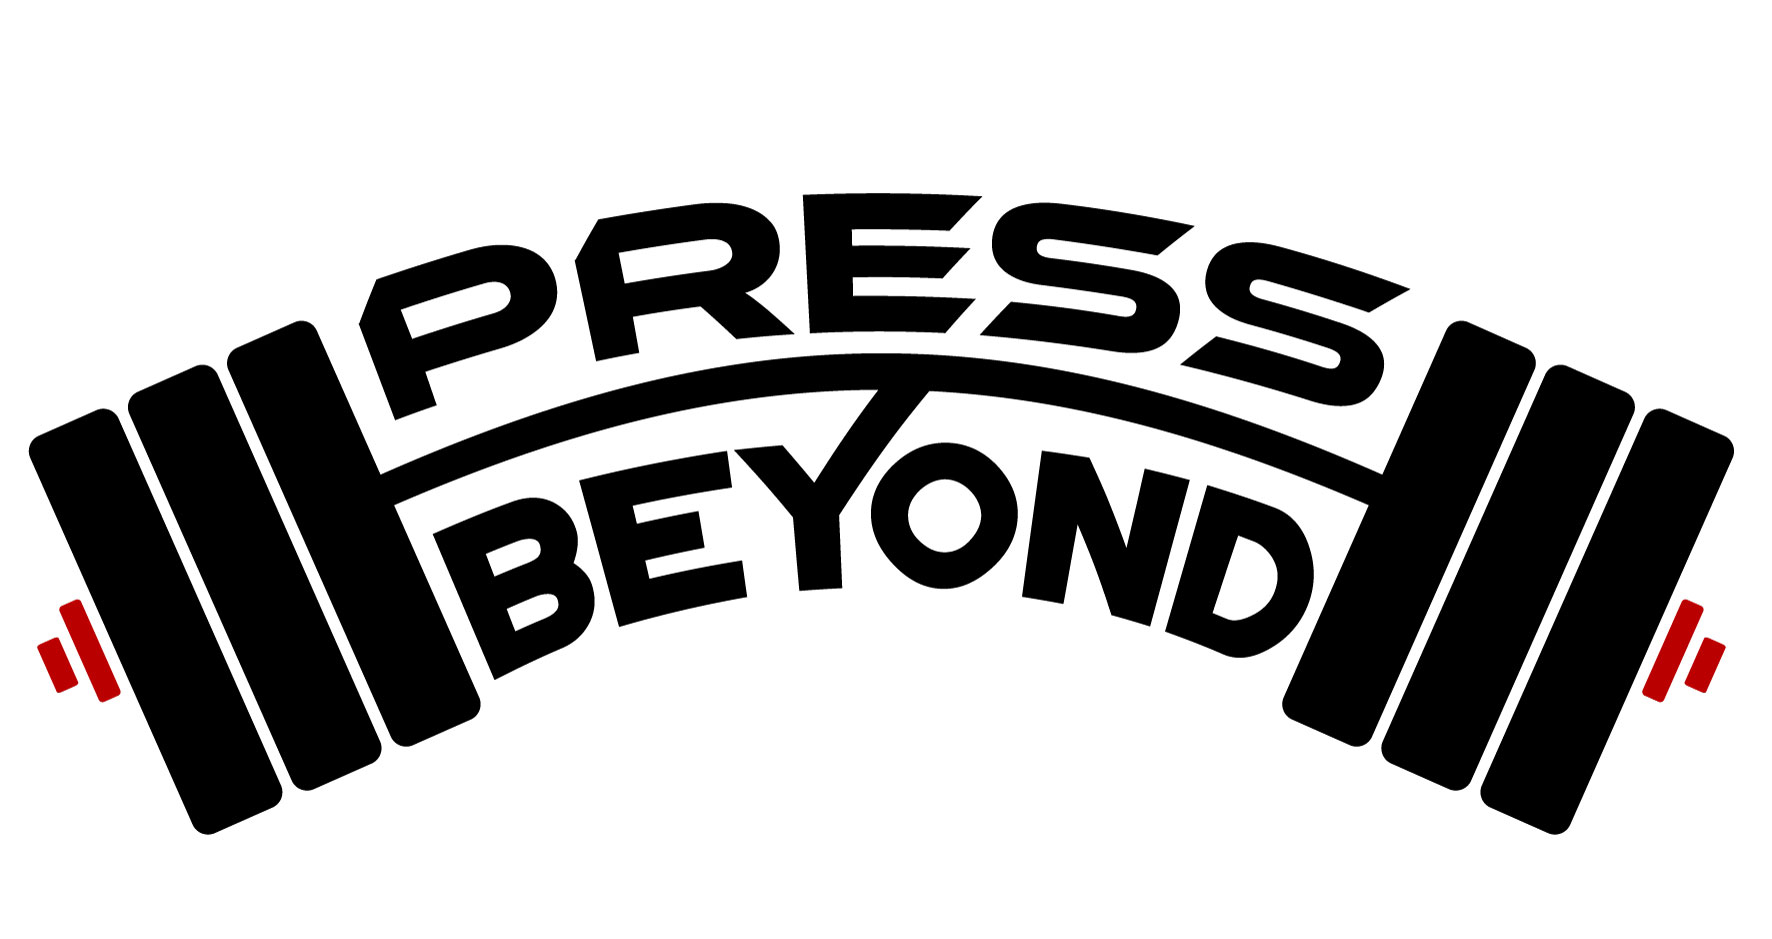 PressBeyond mobile business logo